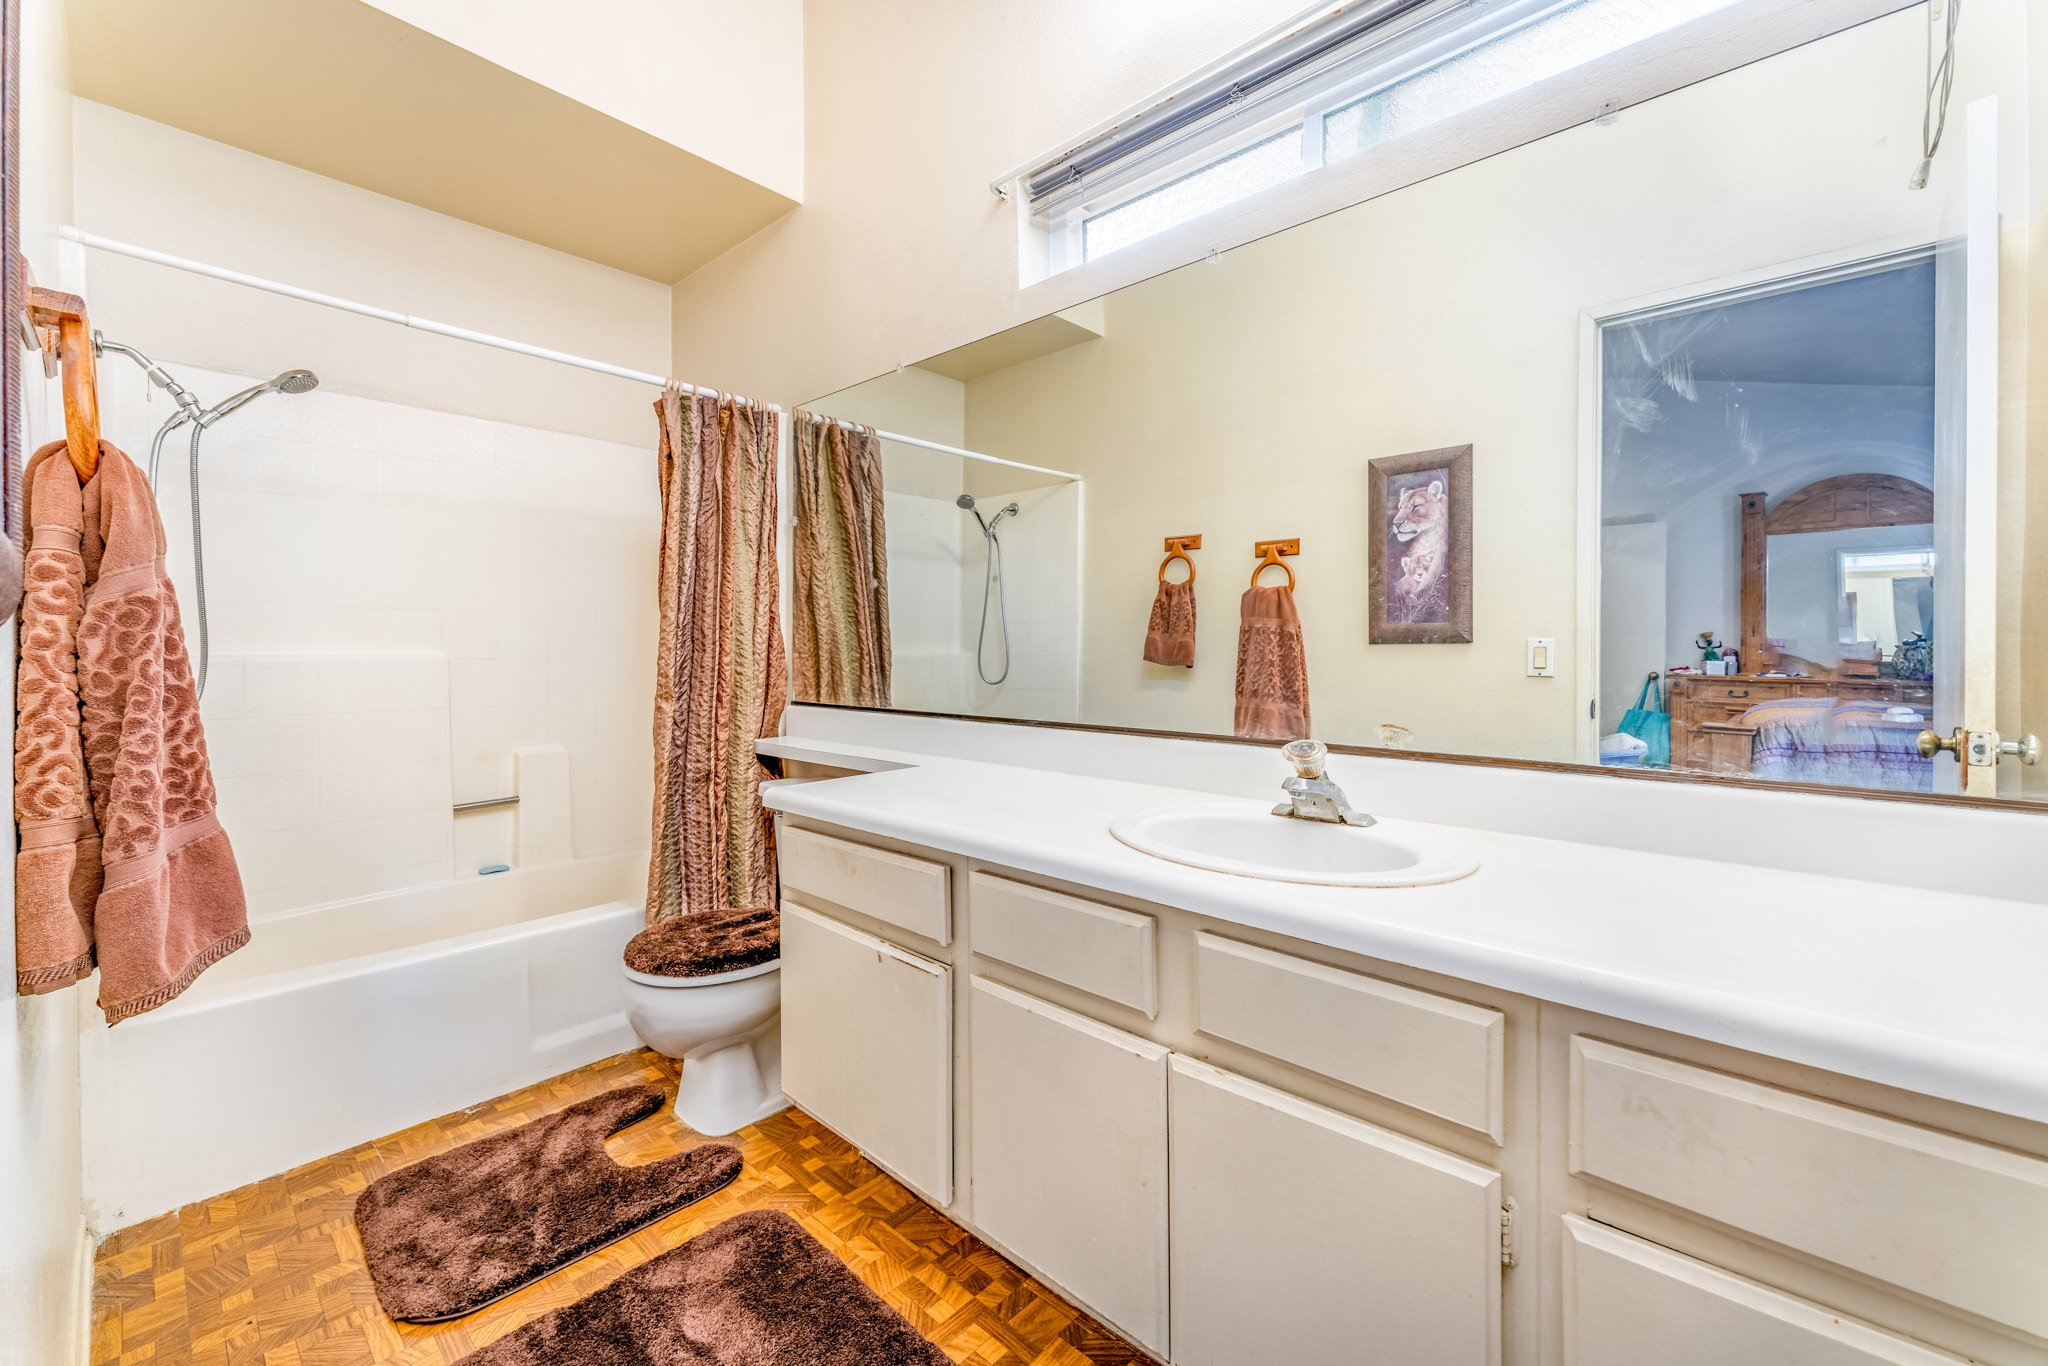 509 Hilltop Terrace Palmdale Real Estate Bathroom Two